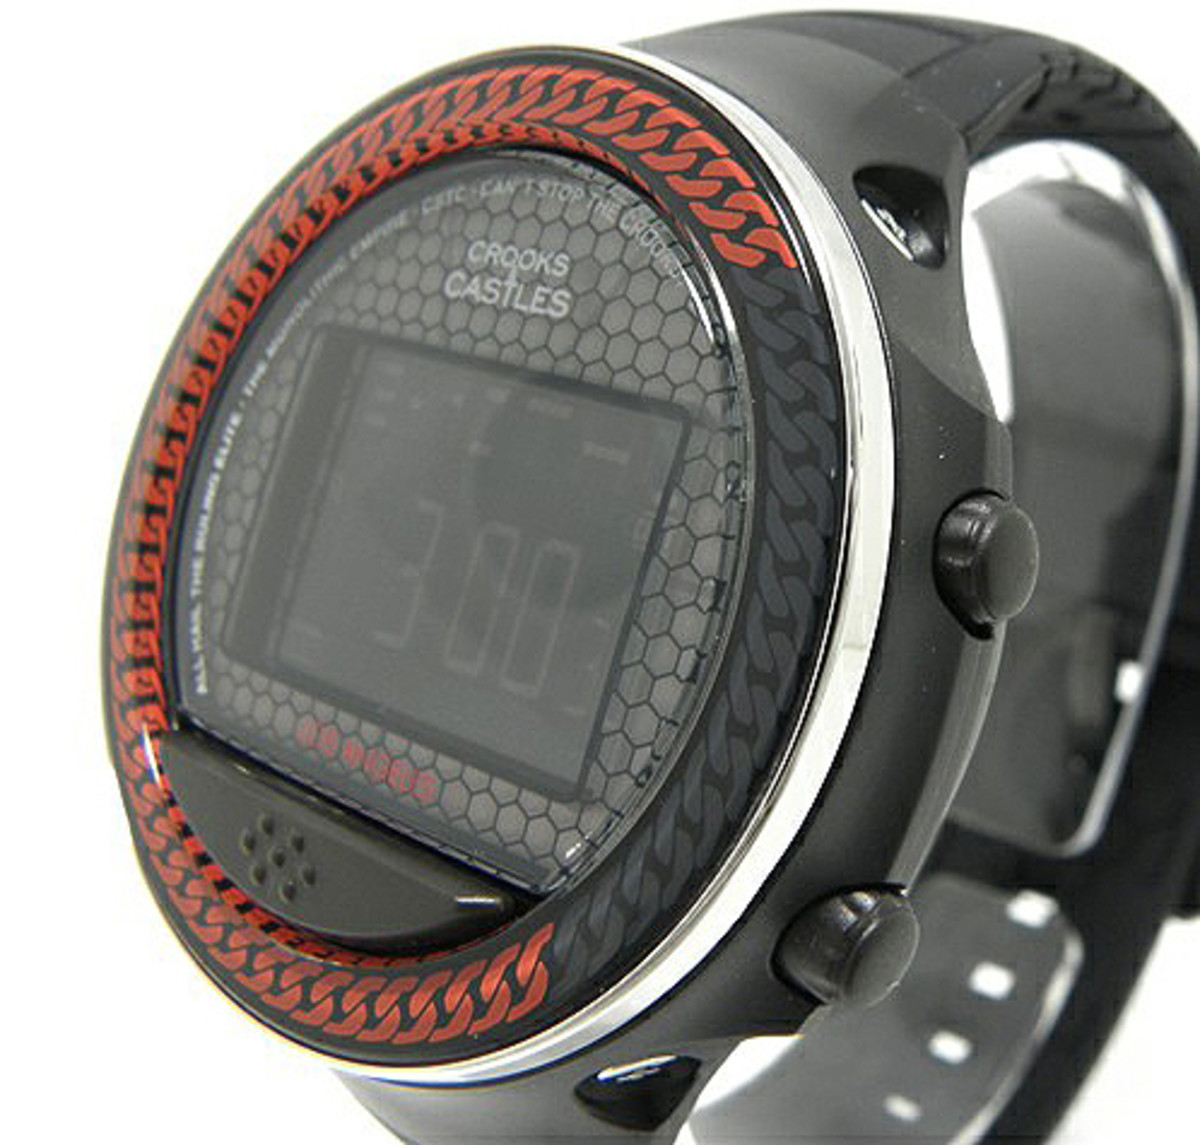 crooks-castles-seiko-wired-h-watch-04